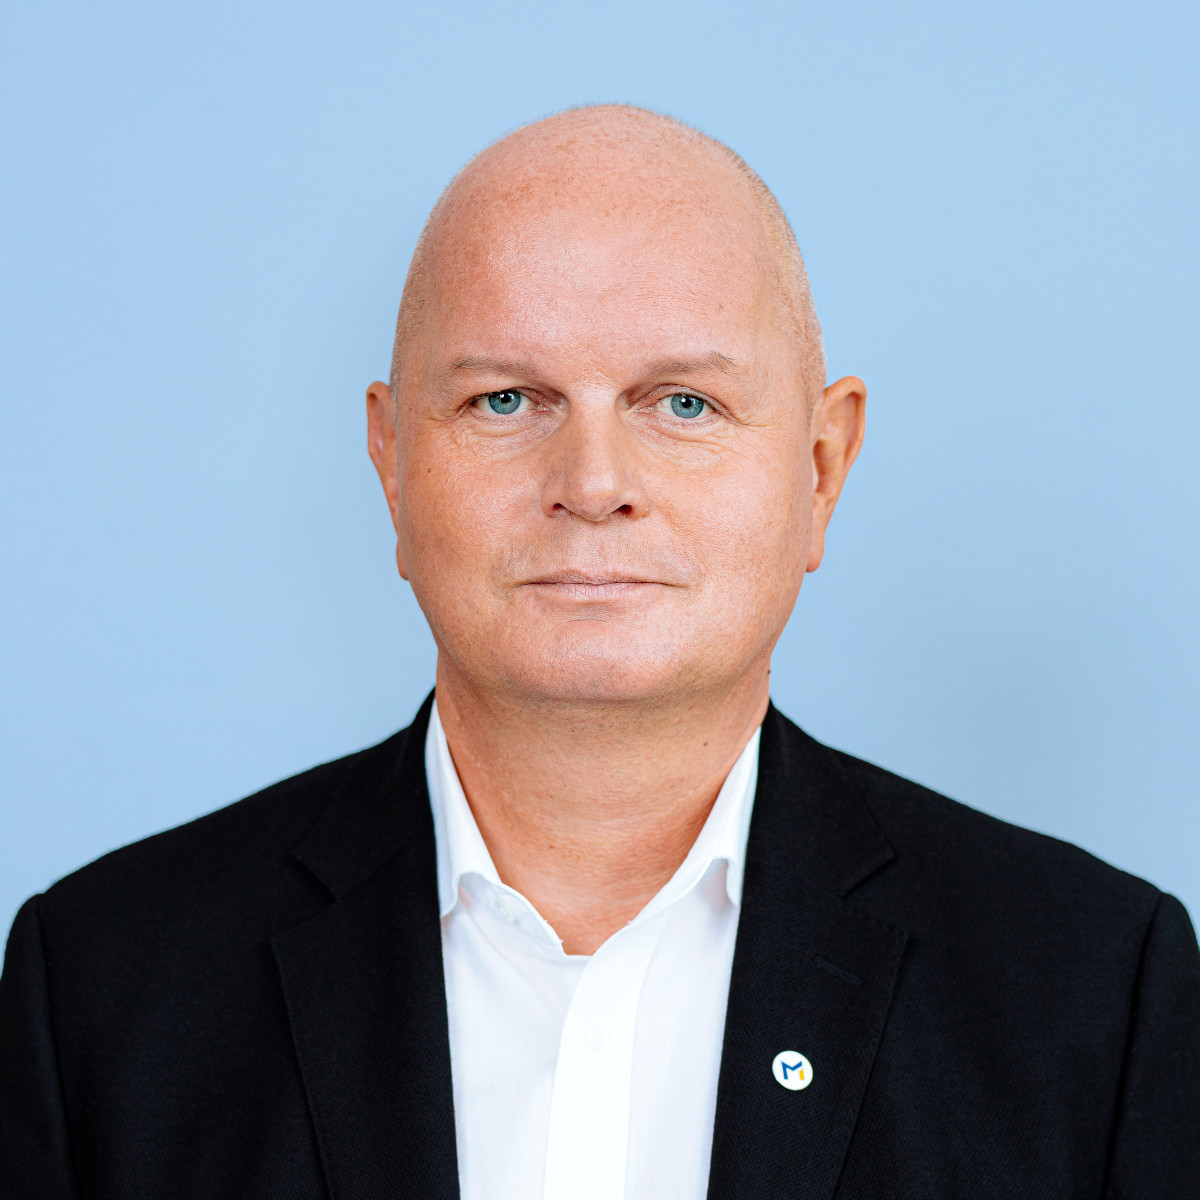 Olaf Koch, Chairman of the Management Board